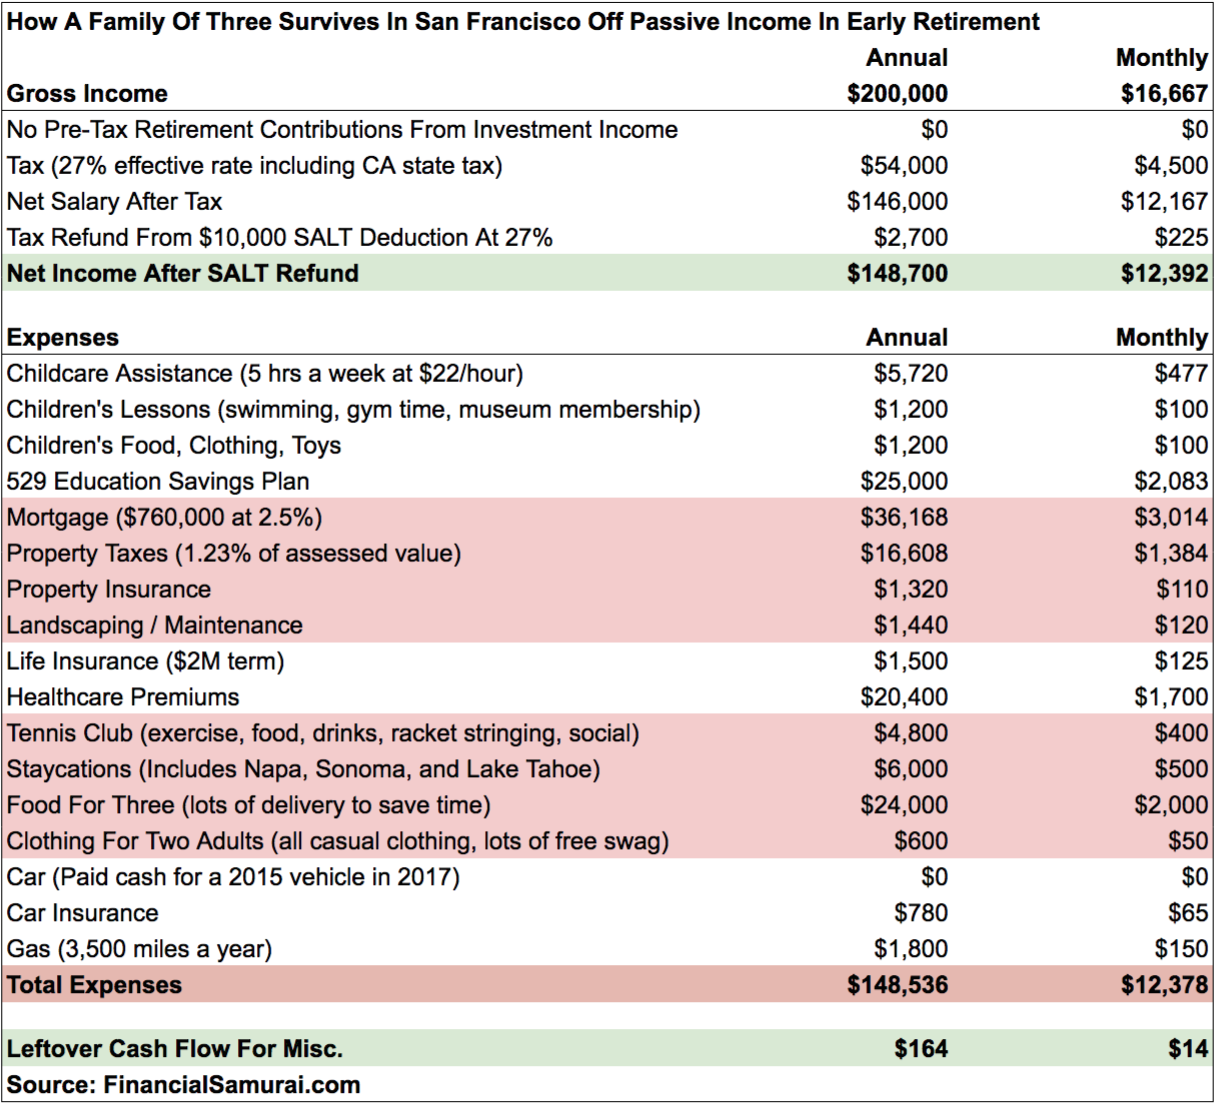 Early Retirement Case Study: $200,000 In Passive Income For Family Of Three In San Francisco